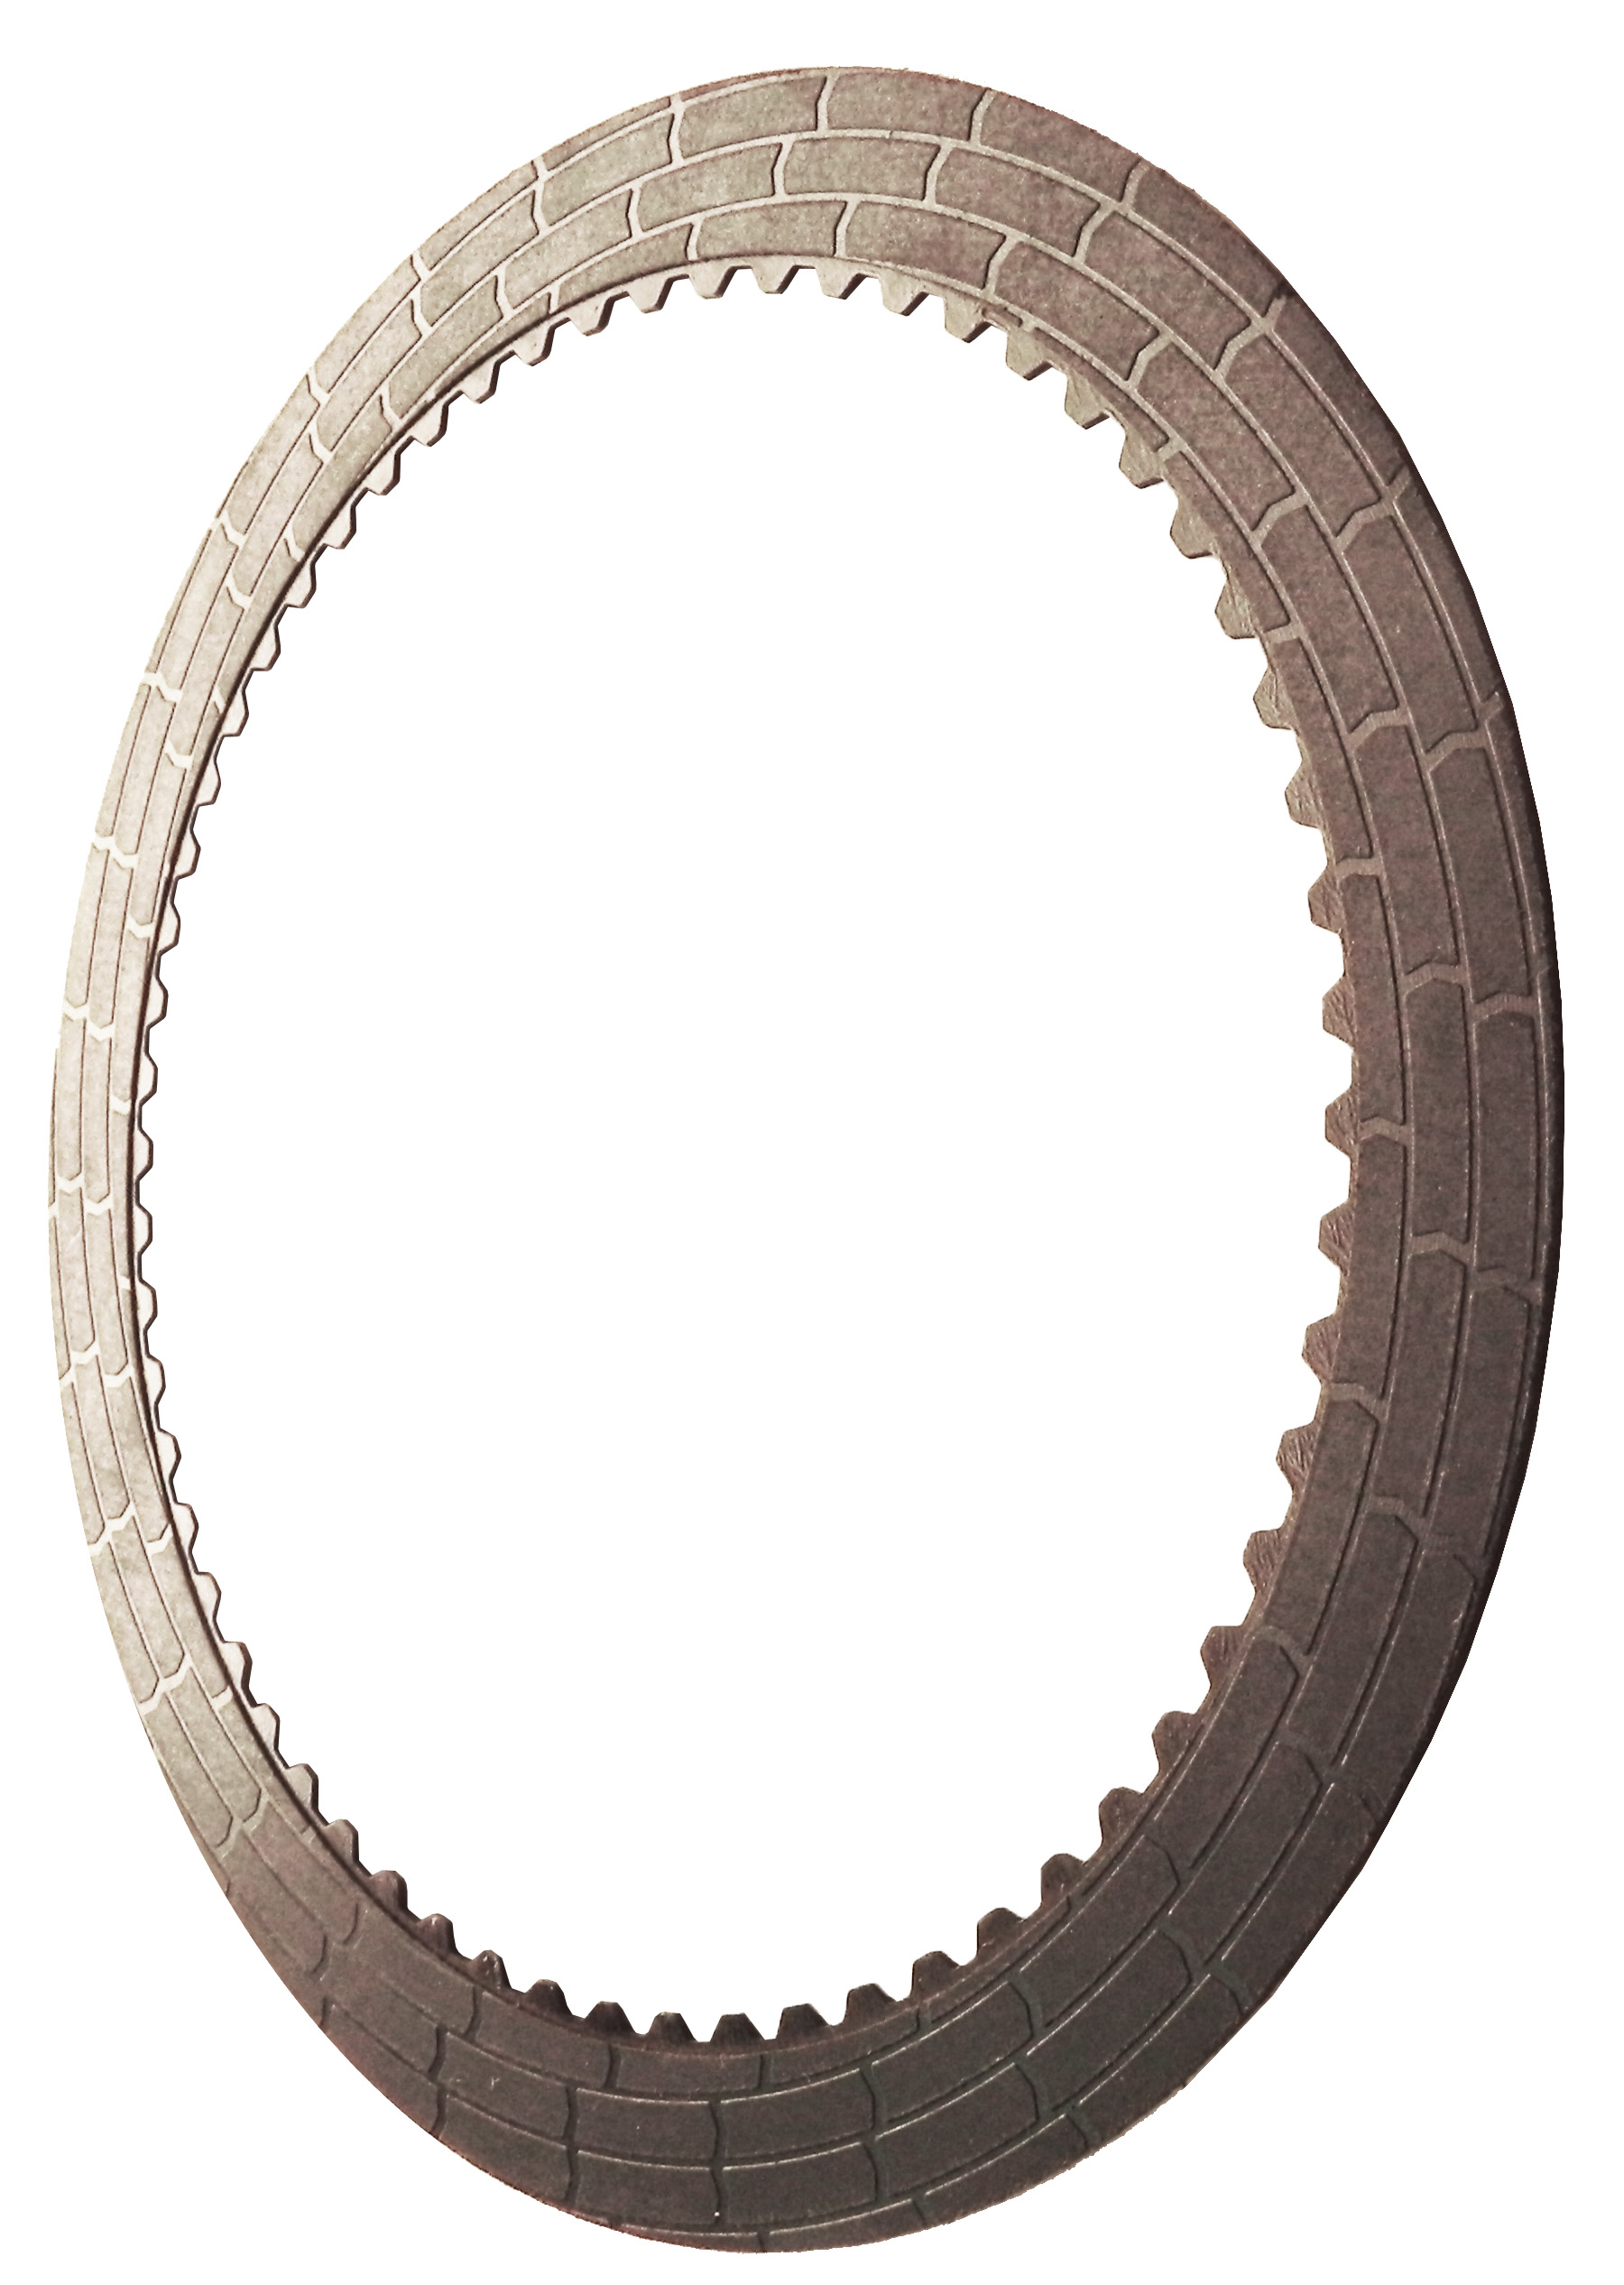 AOD, AODE, 4R70E, 4R70W, 4R75W (HT) Hybrid Technology Friction Clutch Plate